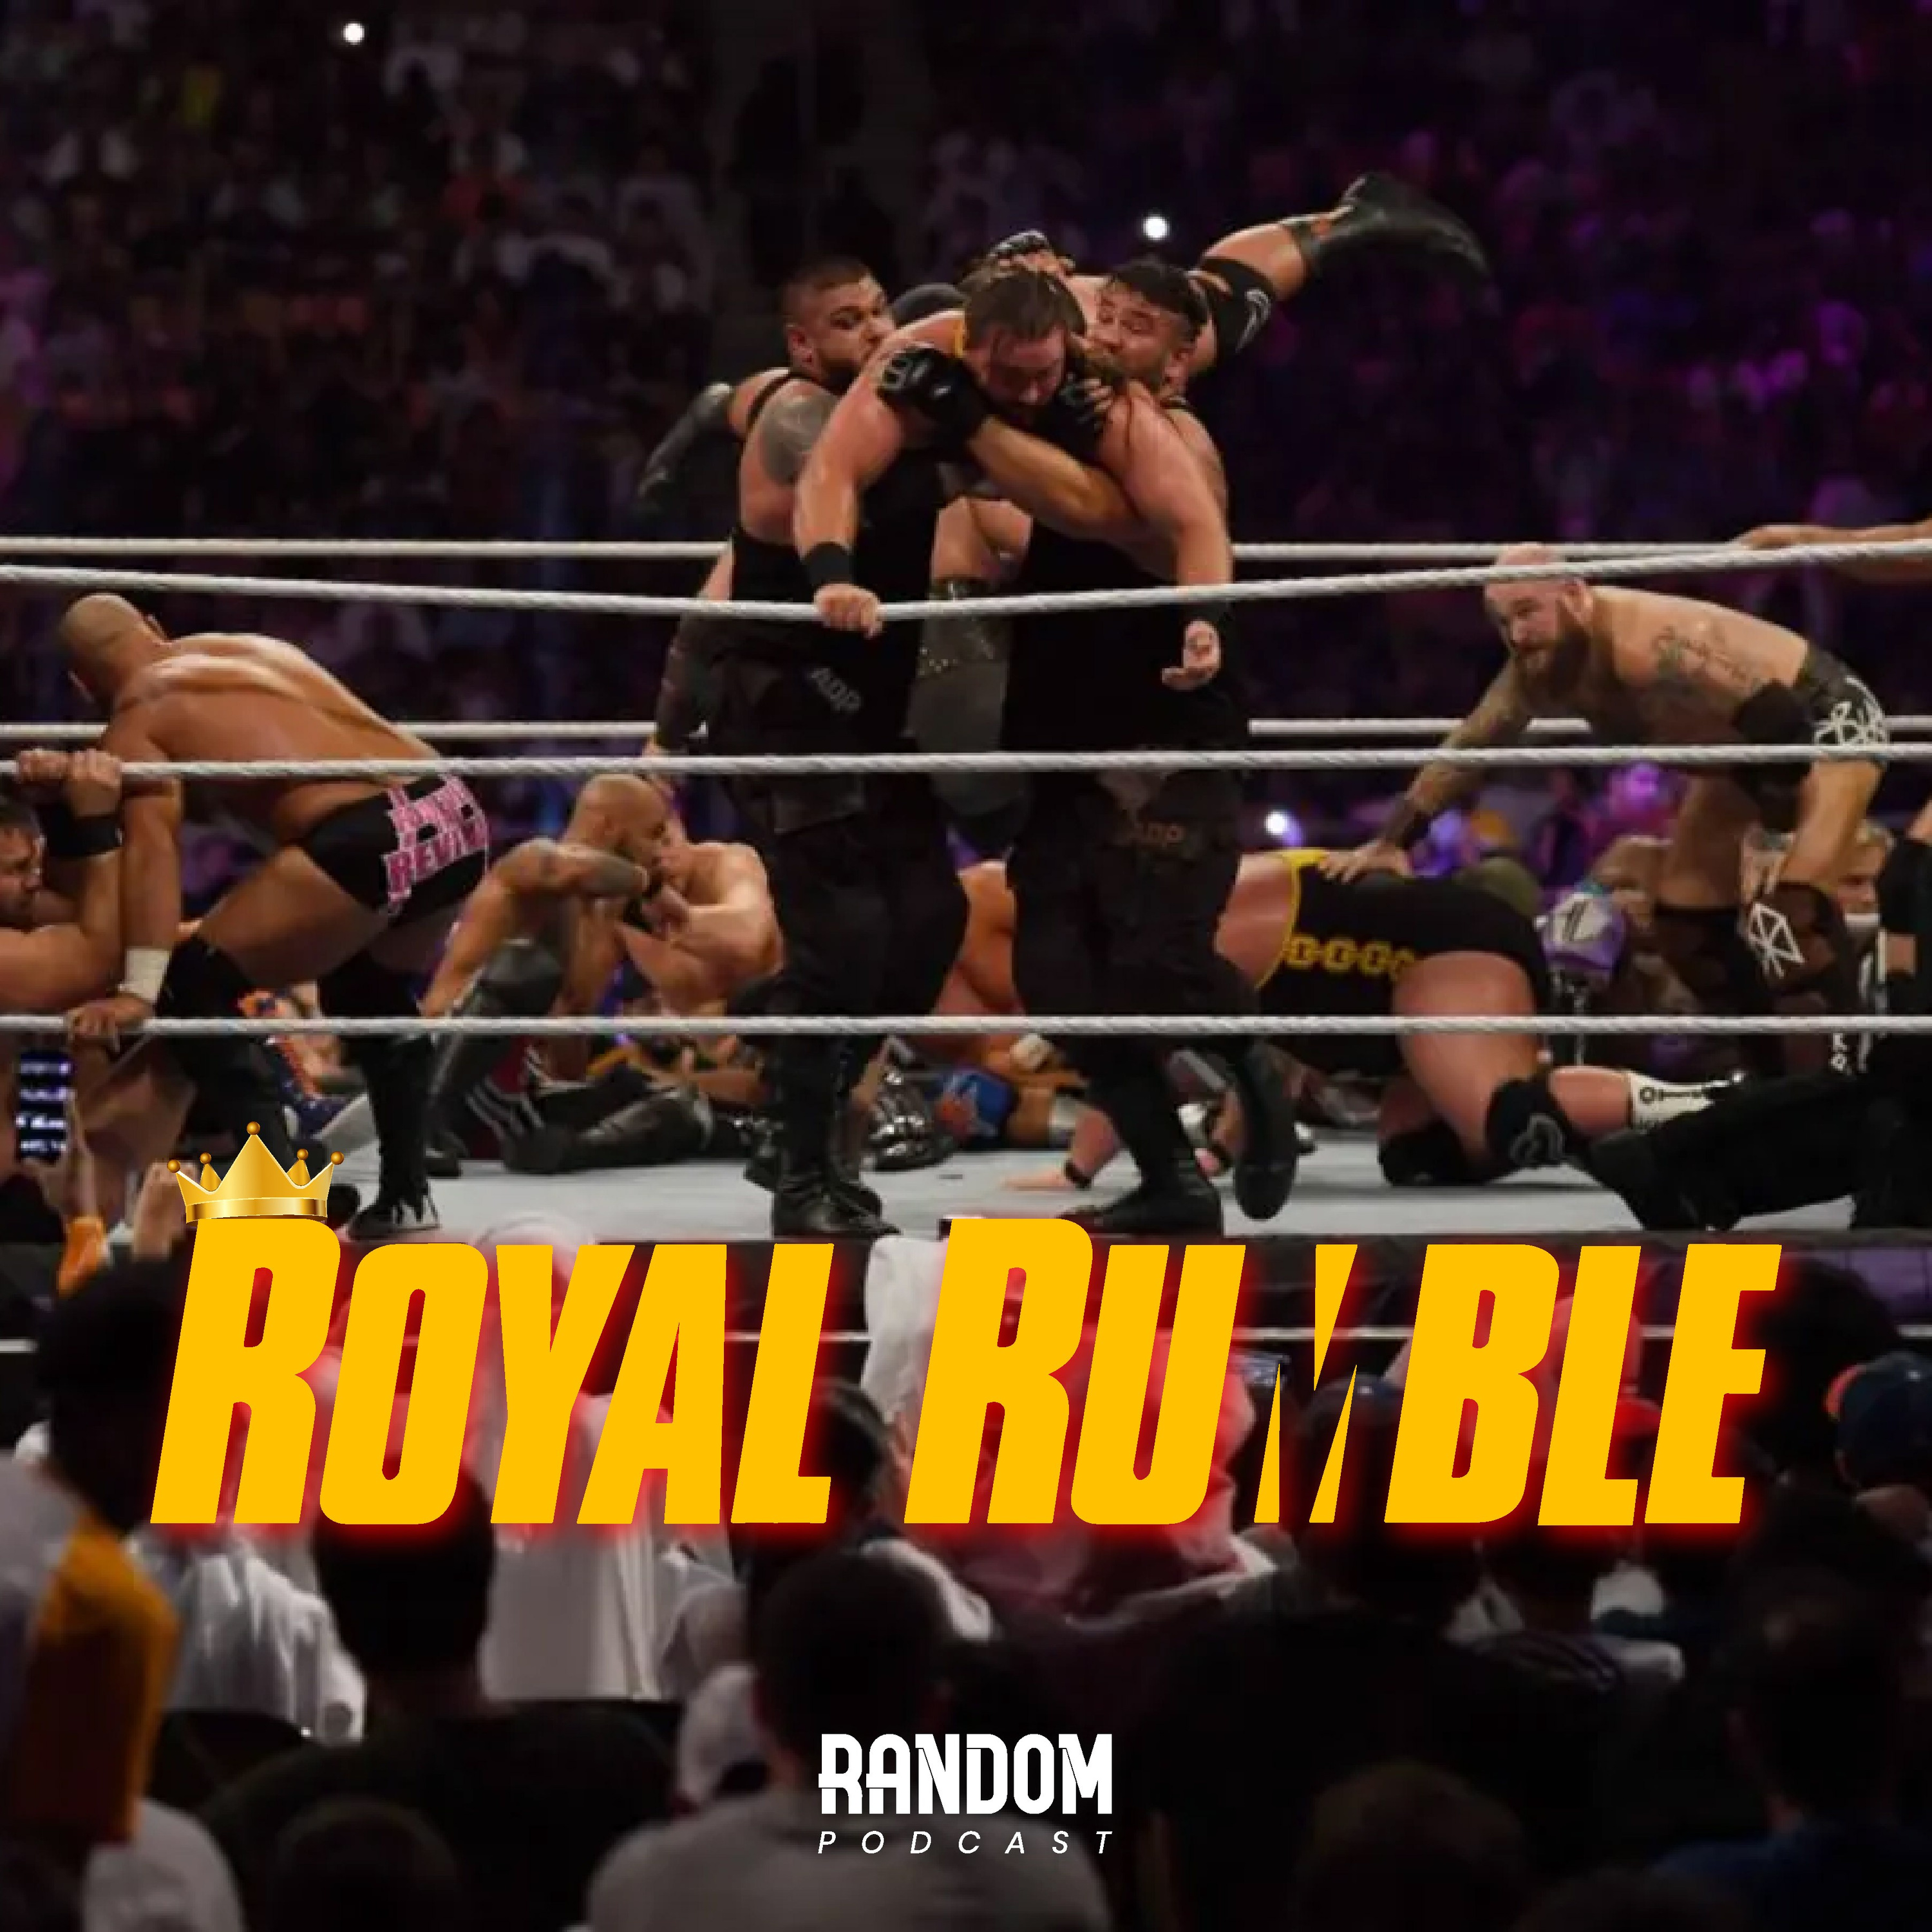 Episode 6 : It's Time for Royal Rumble!